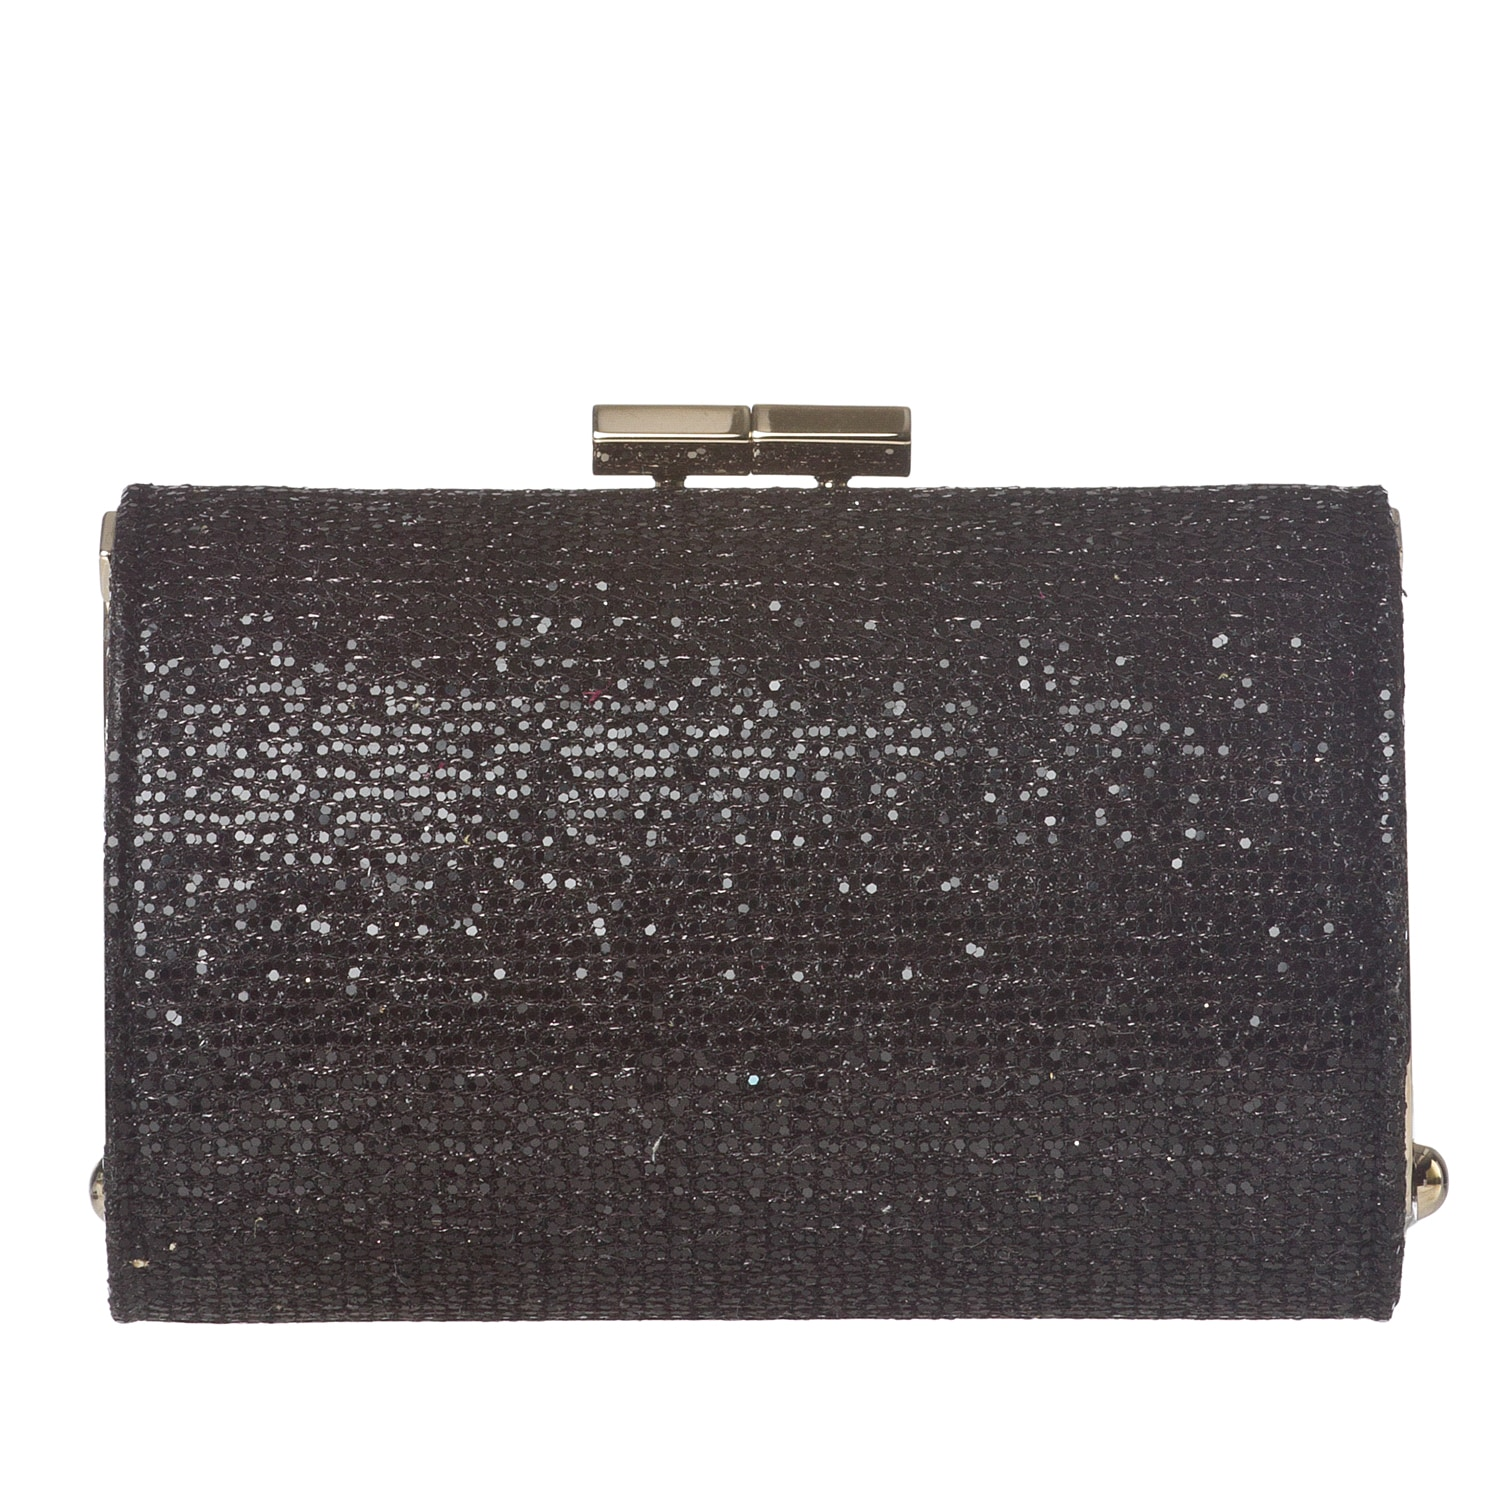 Jimmy Choo '247 MINITUBE GFA' Glitter Mini Tube Clutch